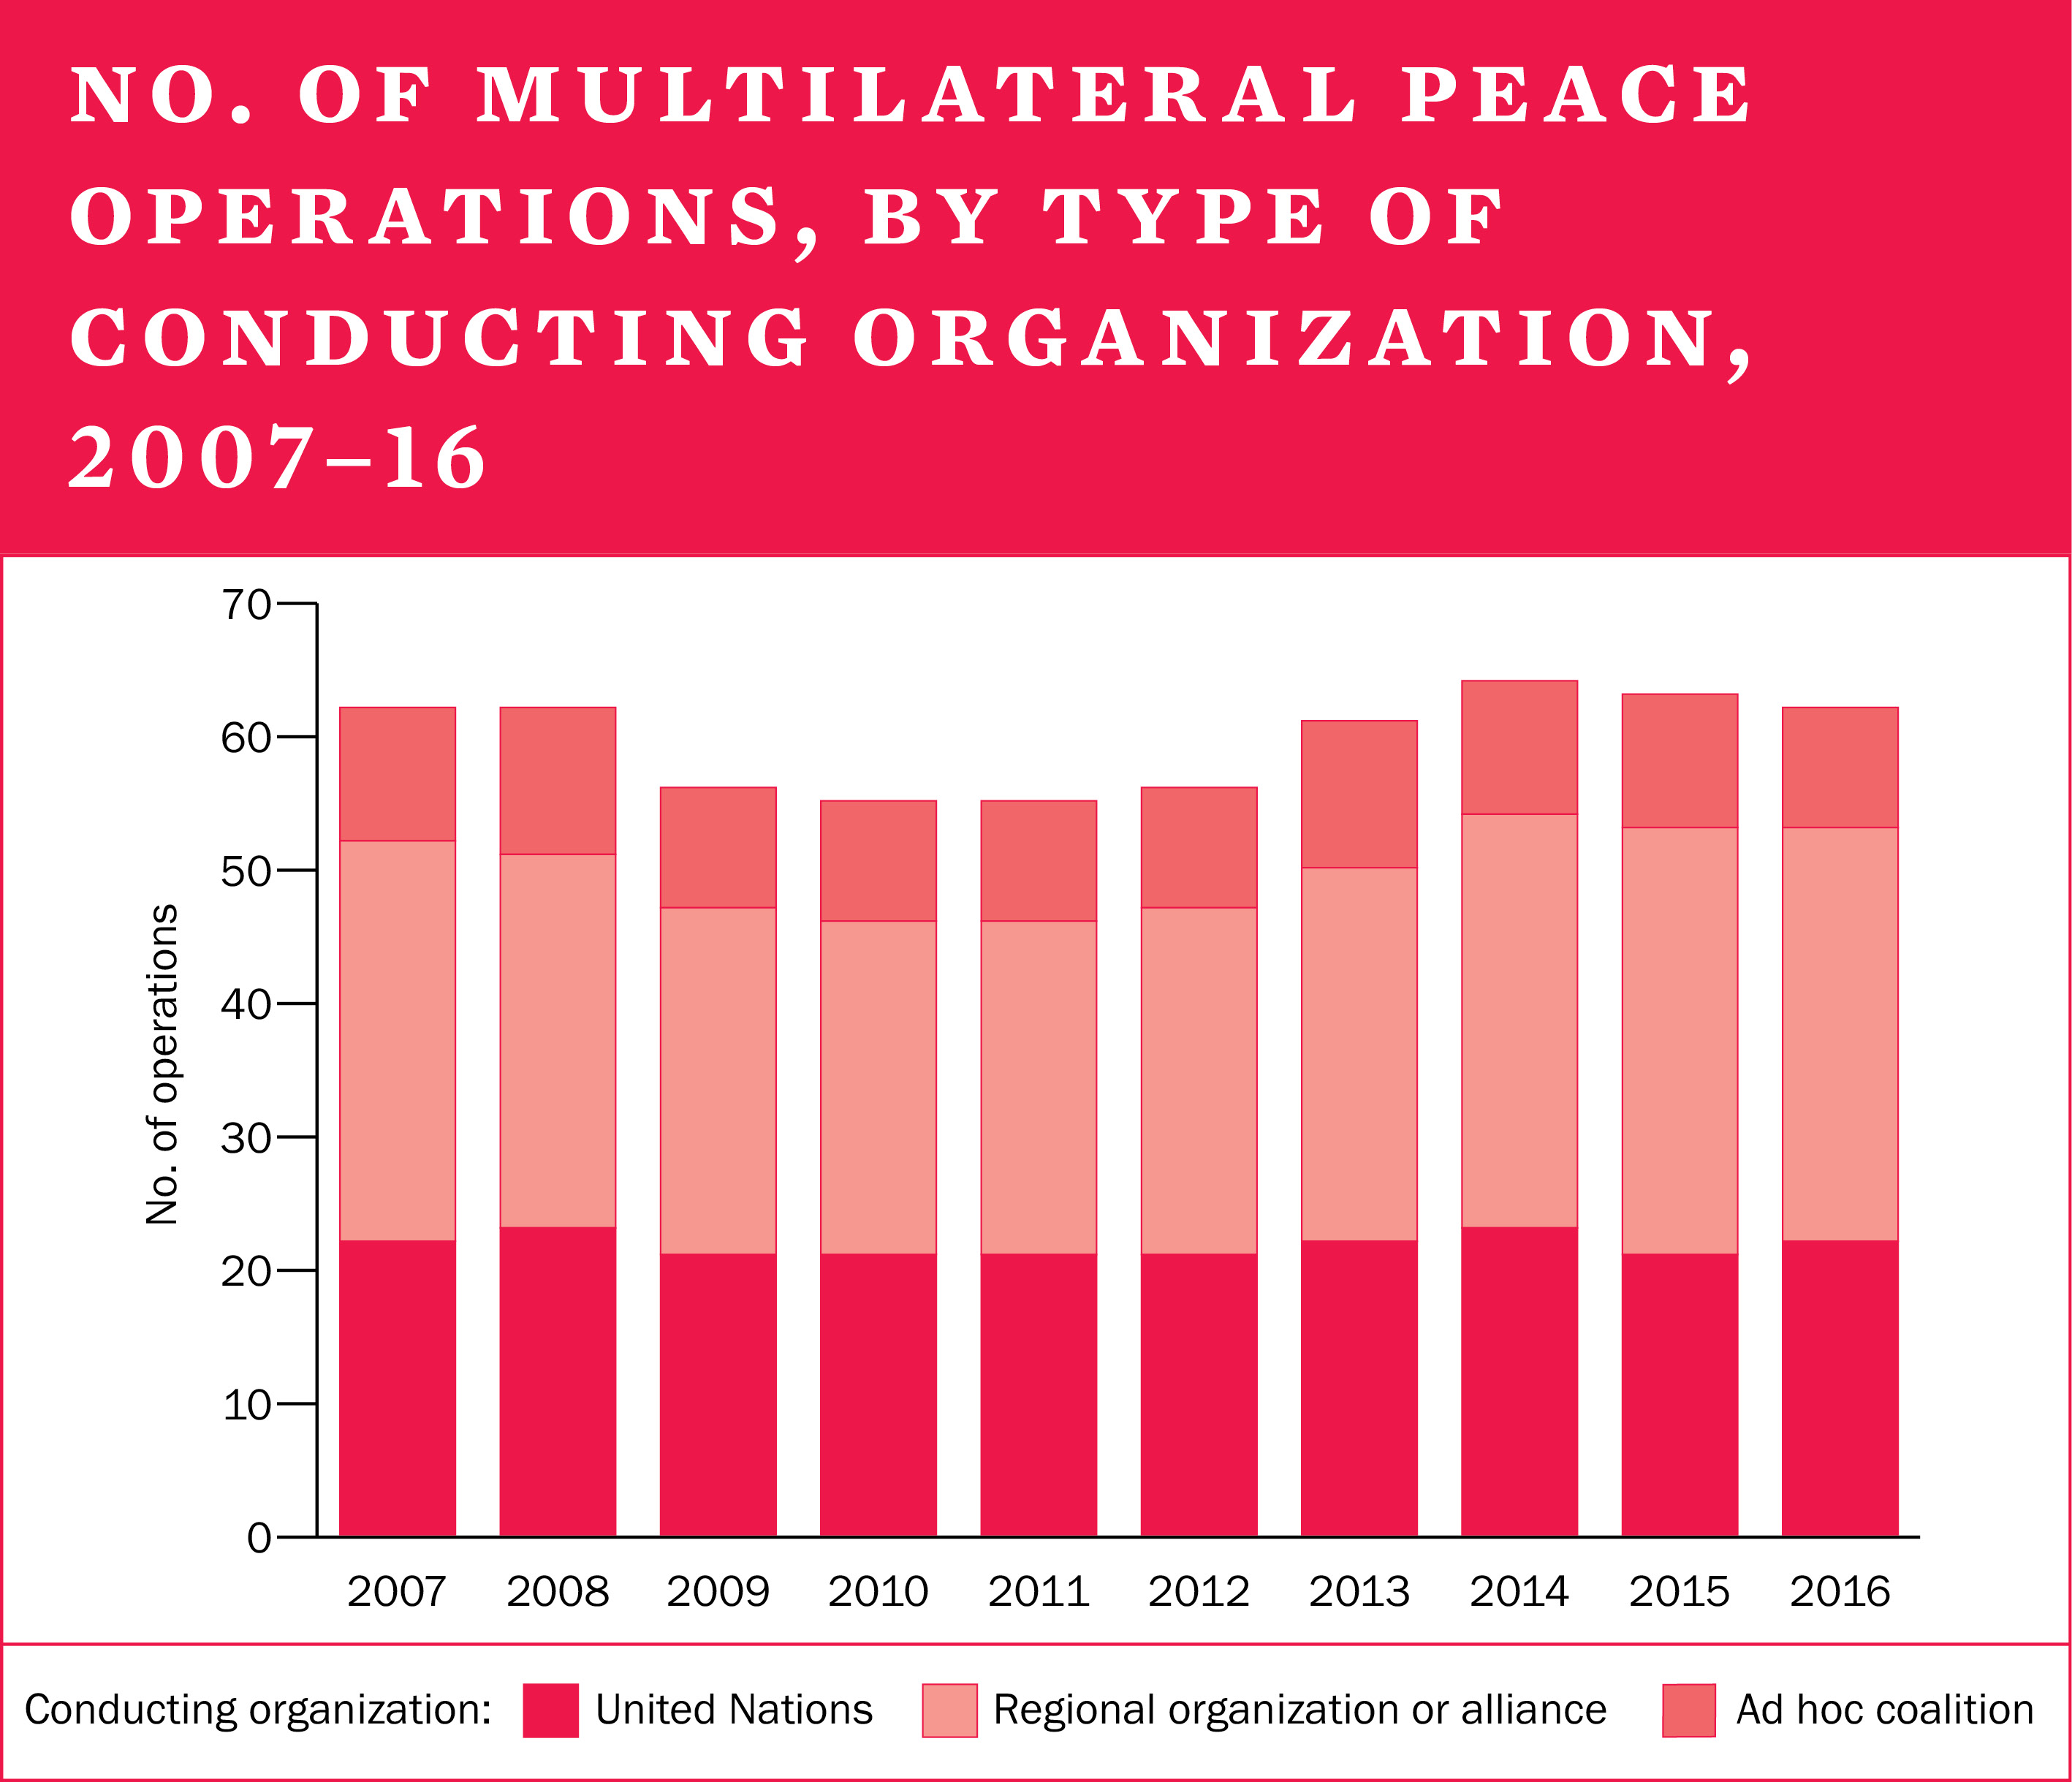 No. of multilateral peace operations, by type of conducting organization, 2007-16